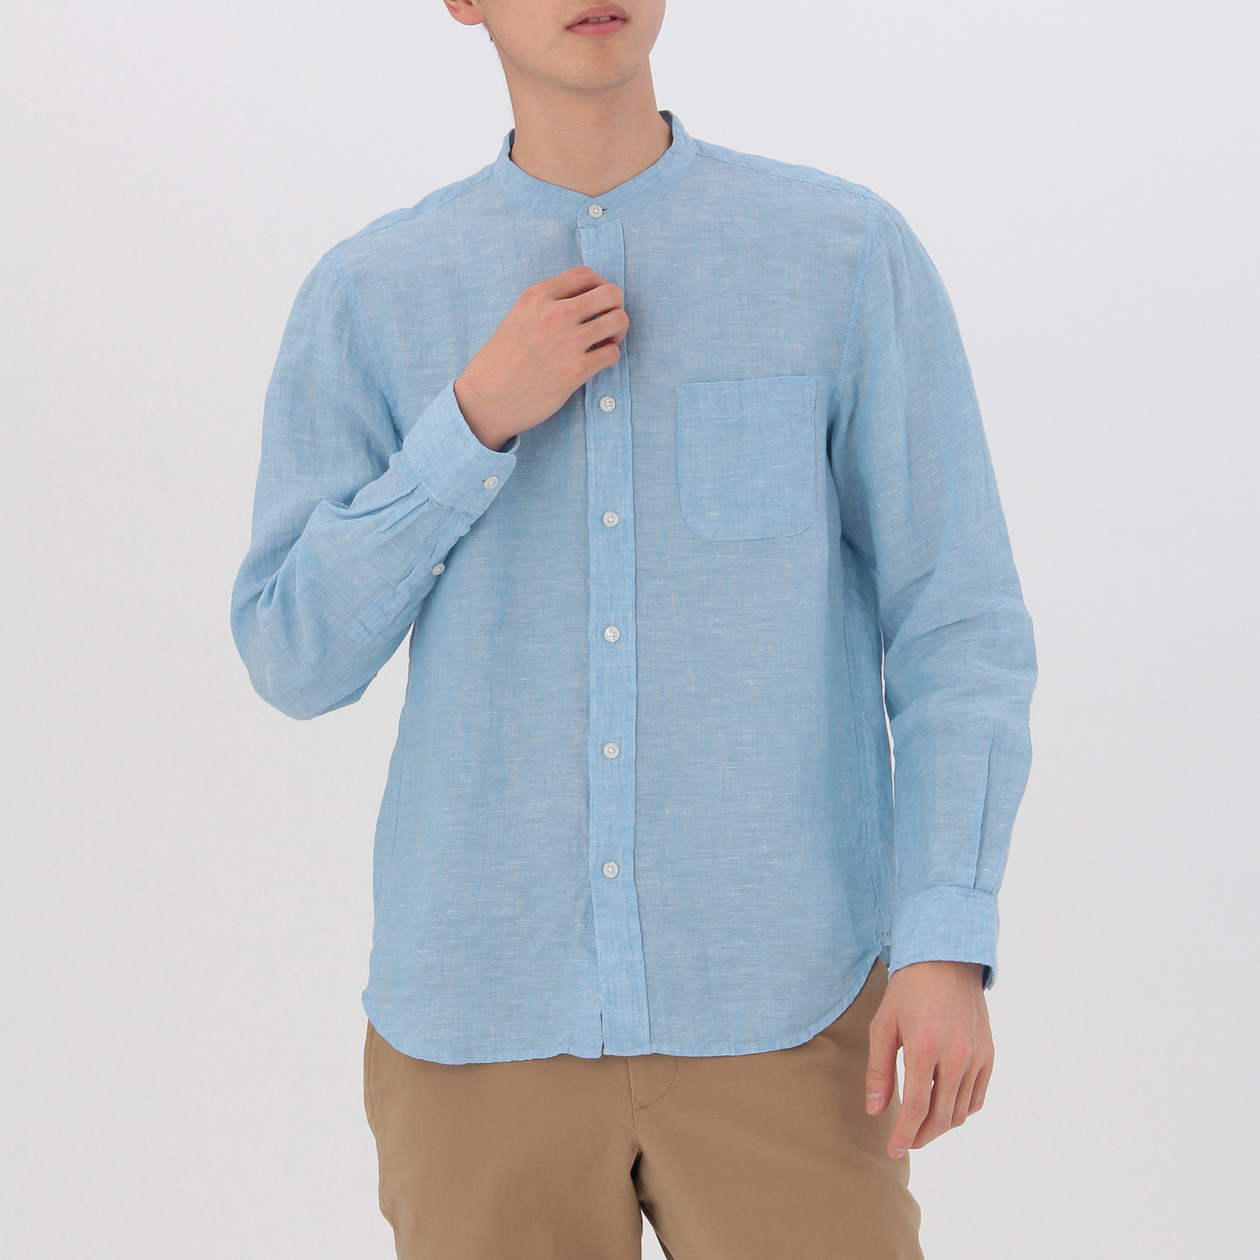 French Linen Washed Stand Collar Shirt Muji